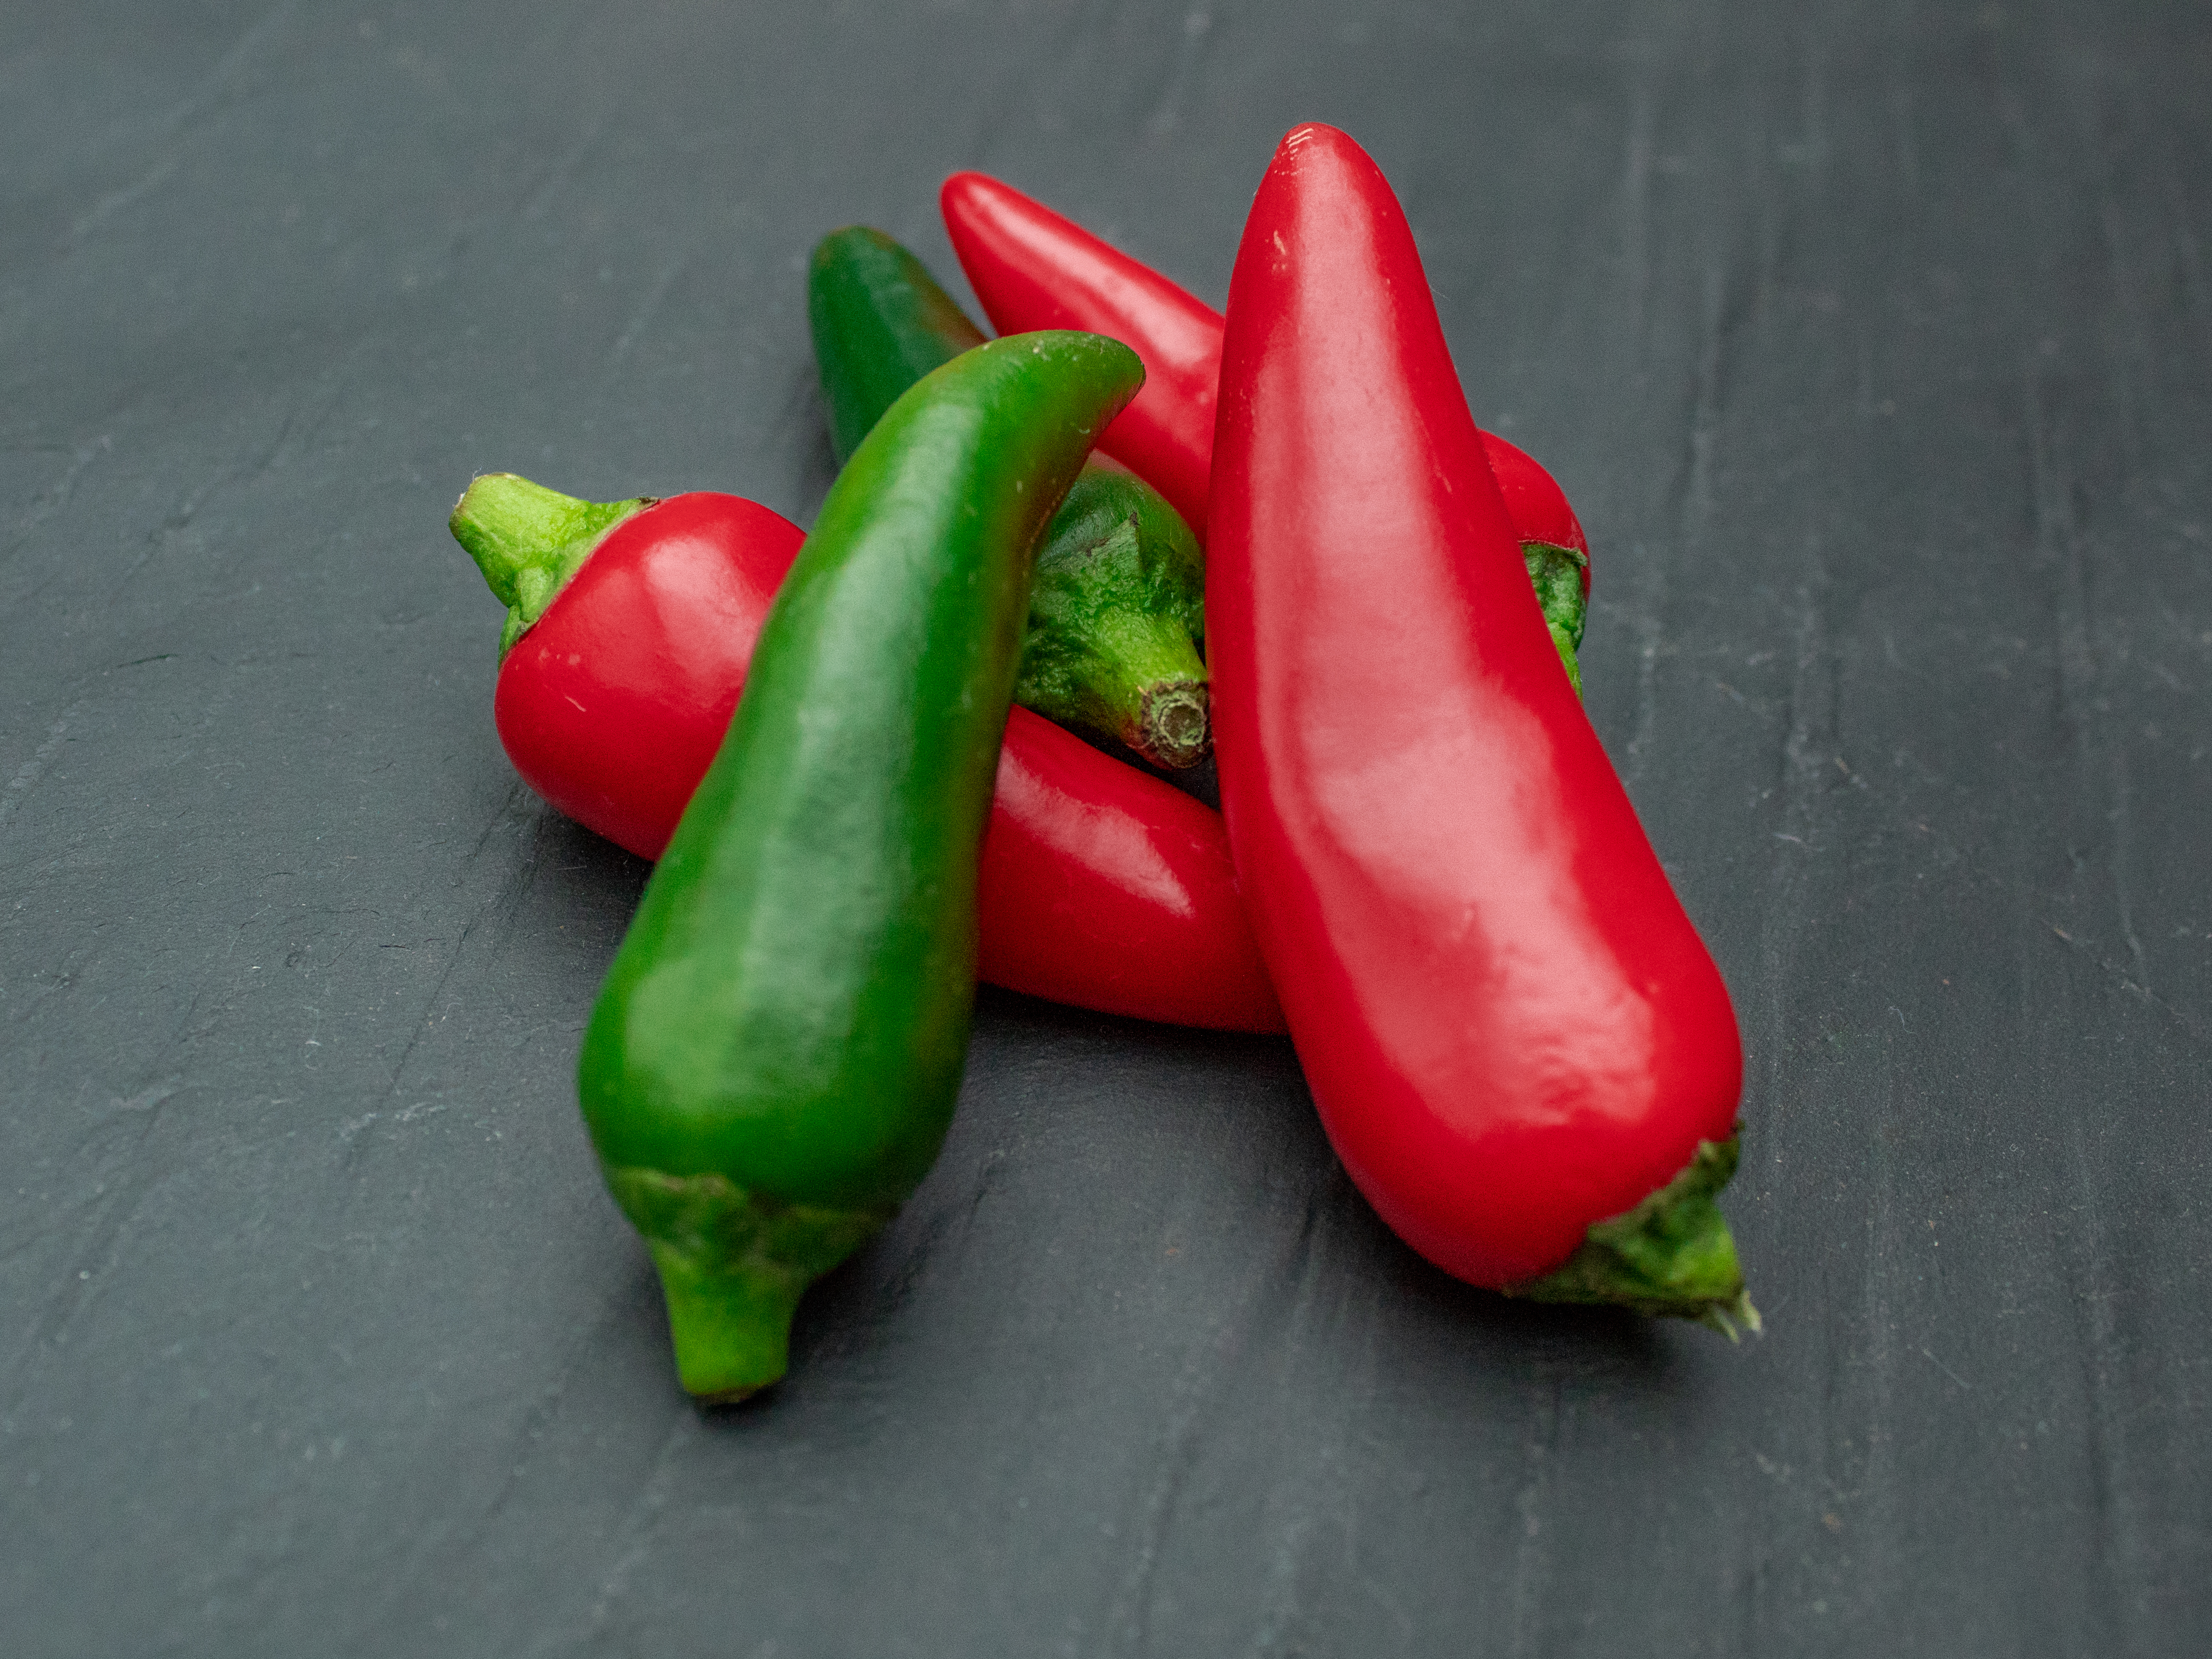 Red and Green Chilies on a Slate